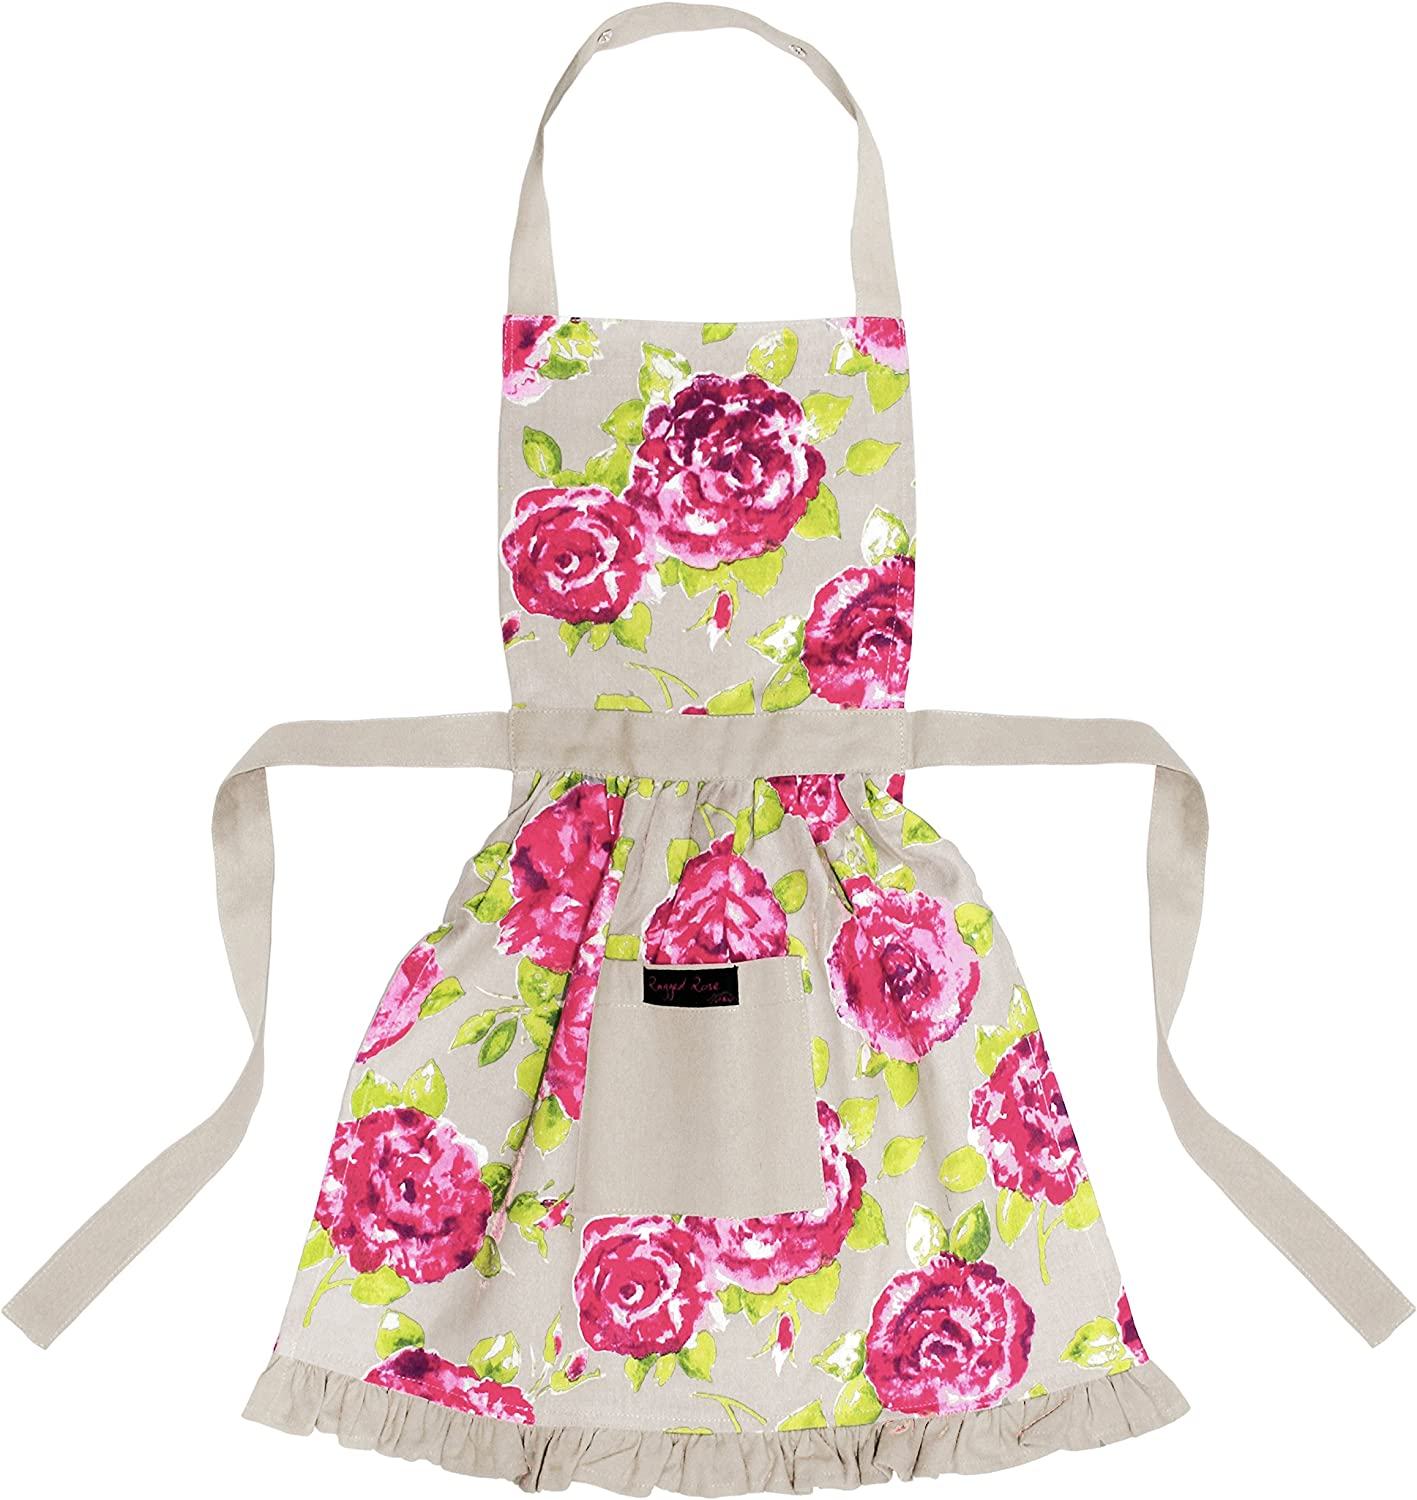 Ragged Rose Betsy Floral Girls Cotton Apron - Taupe